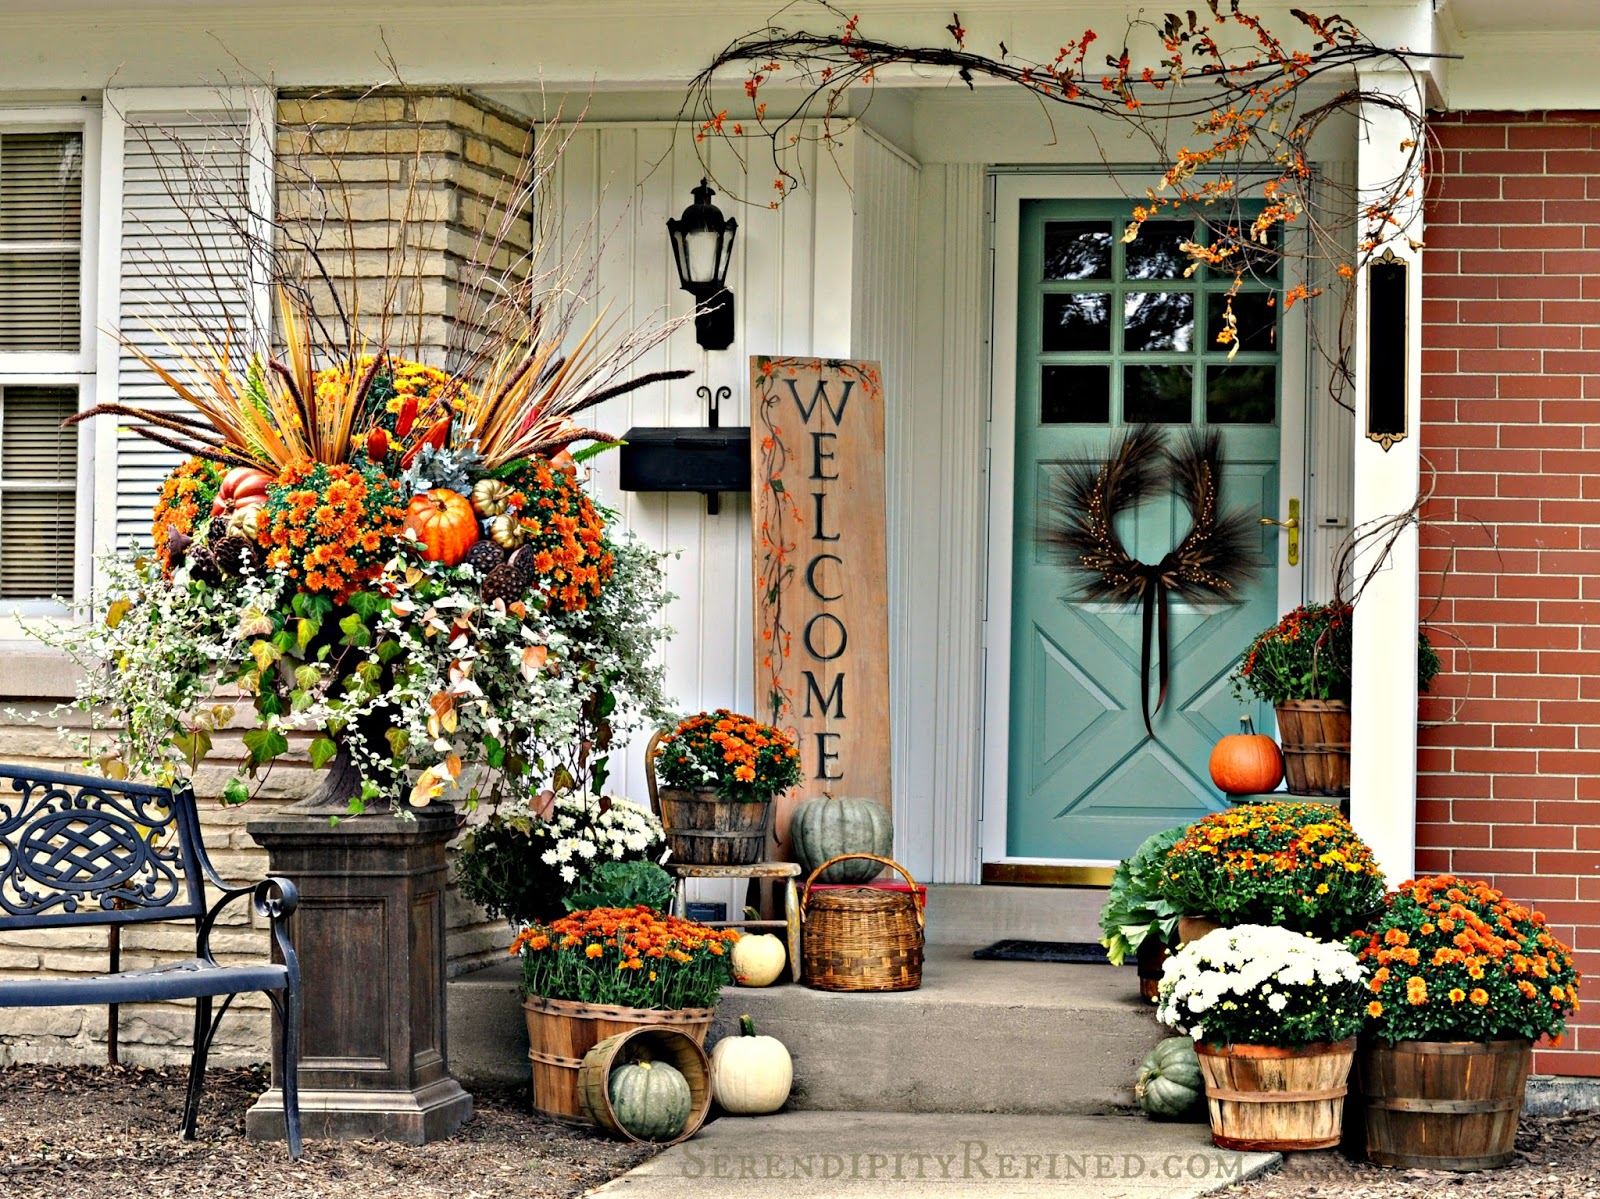 Serendipity Refined Blog: Fall Harvest Porch Decor With Reclaimed Wood Sign